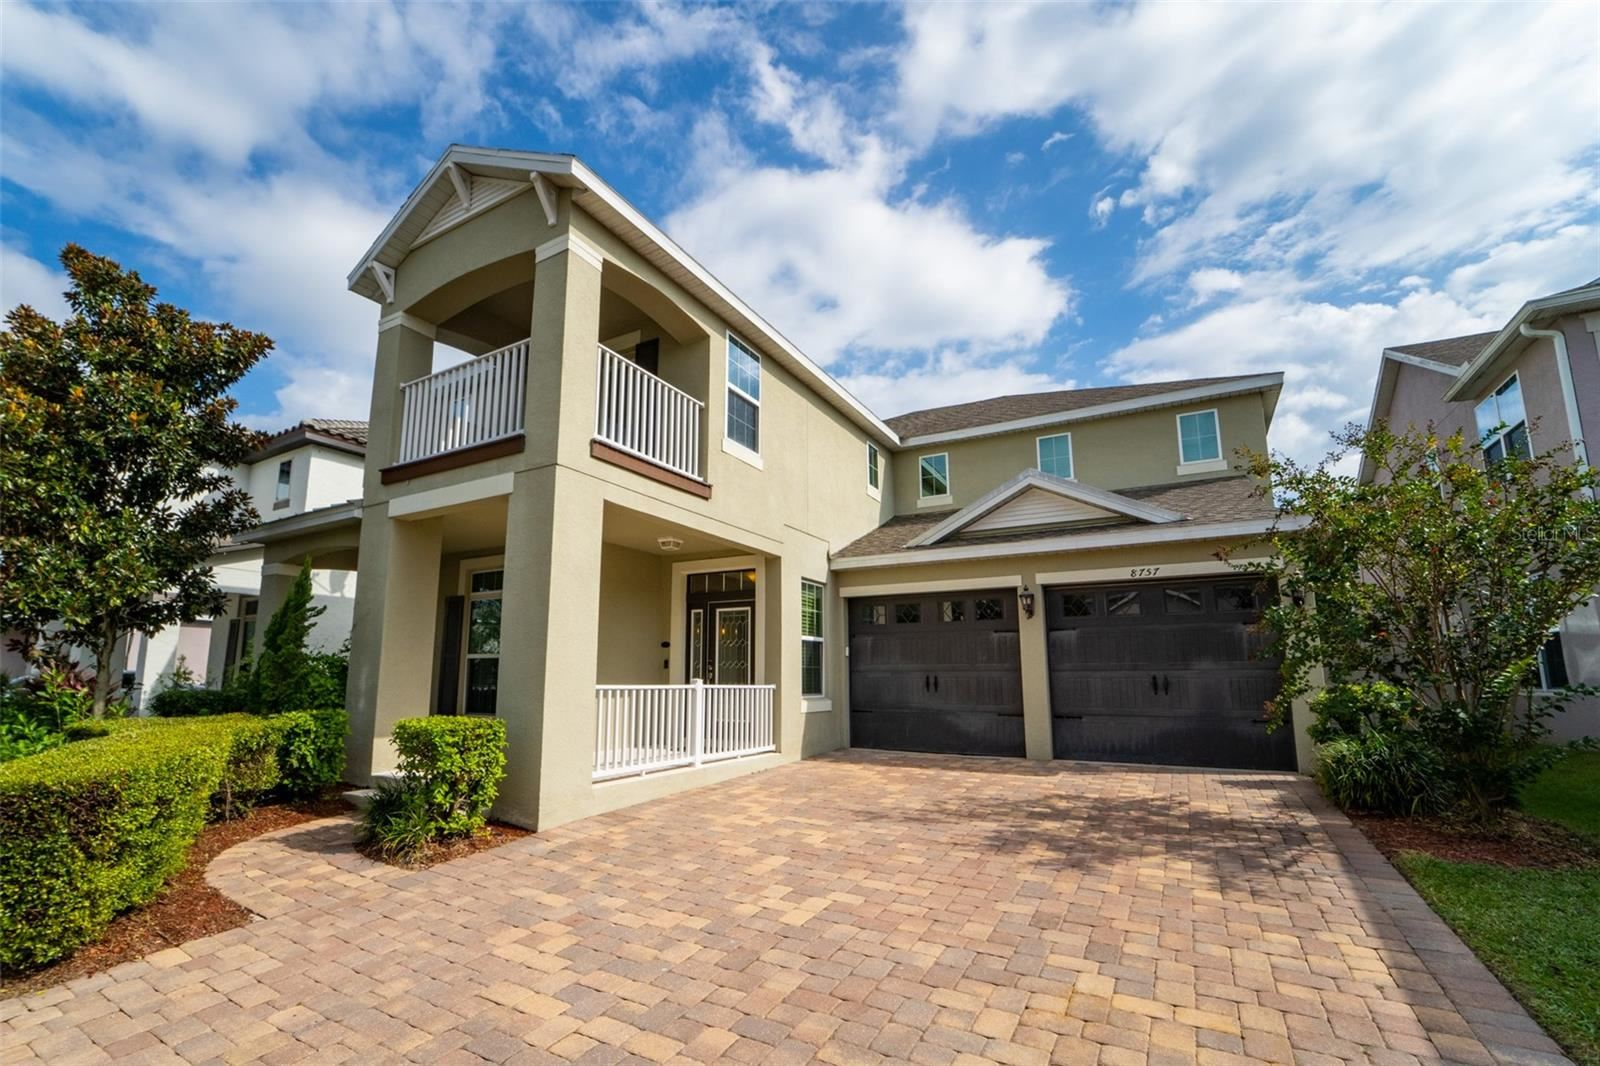 8757 LOOKOUT POINTE DRIVE, Windermere, FL 34786 - #: O5975751